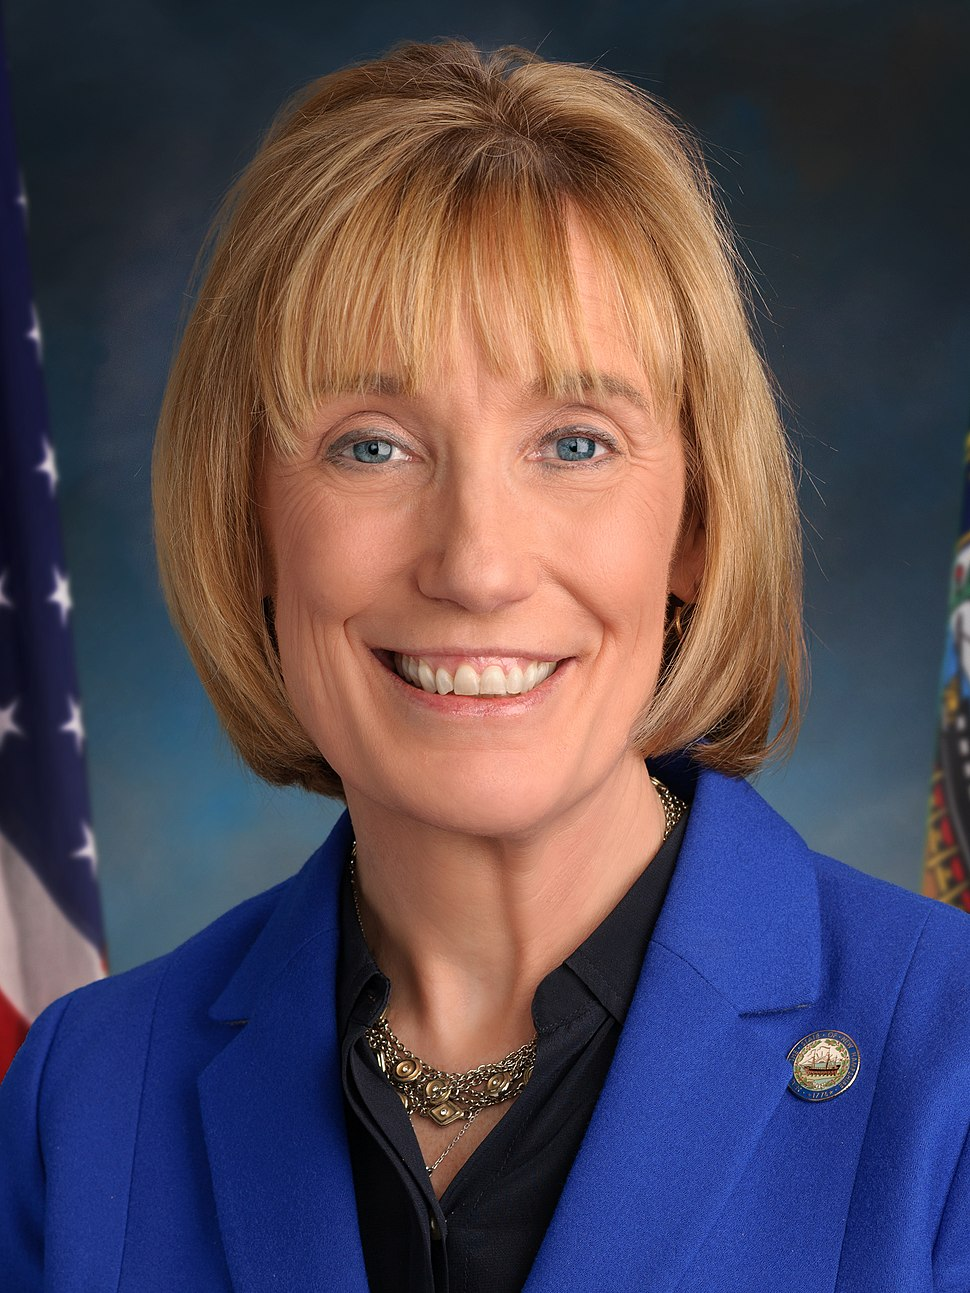 Maggie Hassan, official portrait, 115th Congress (cropped)